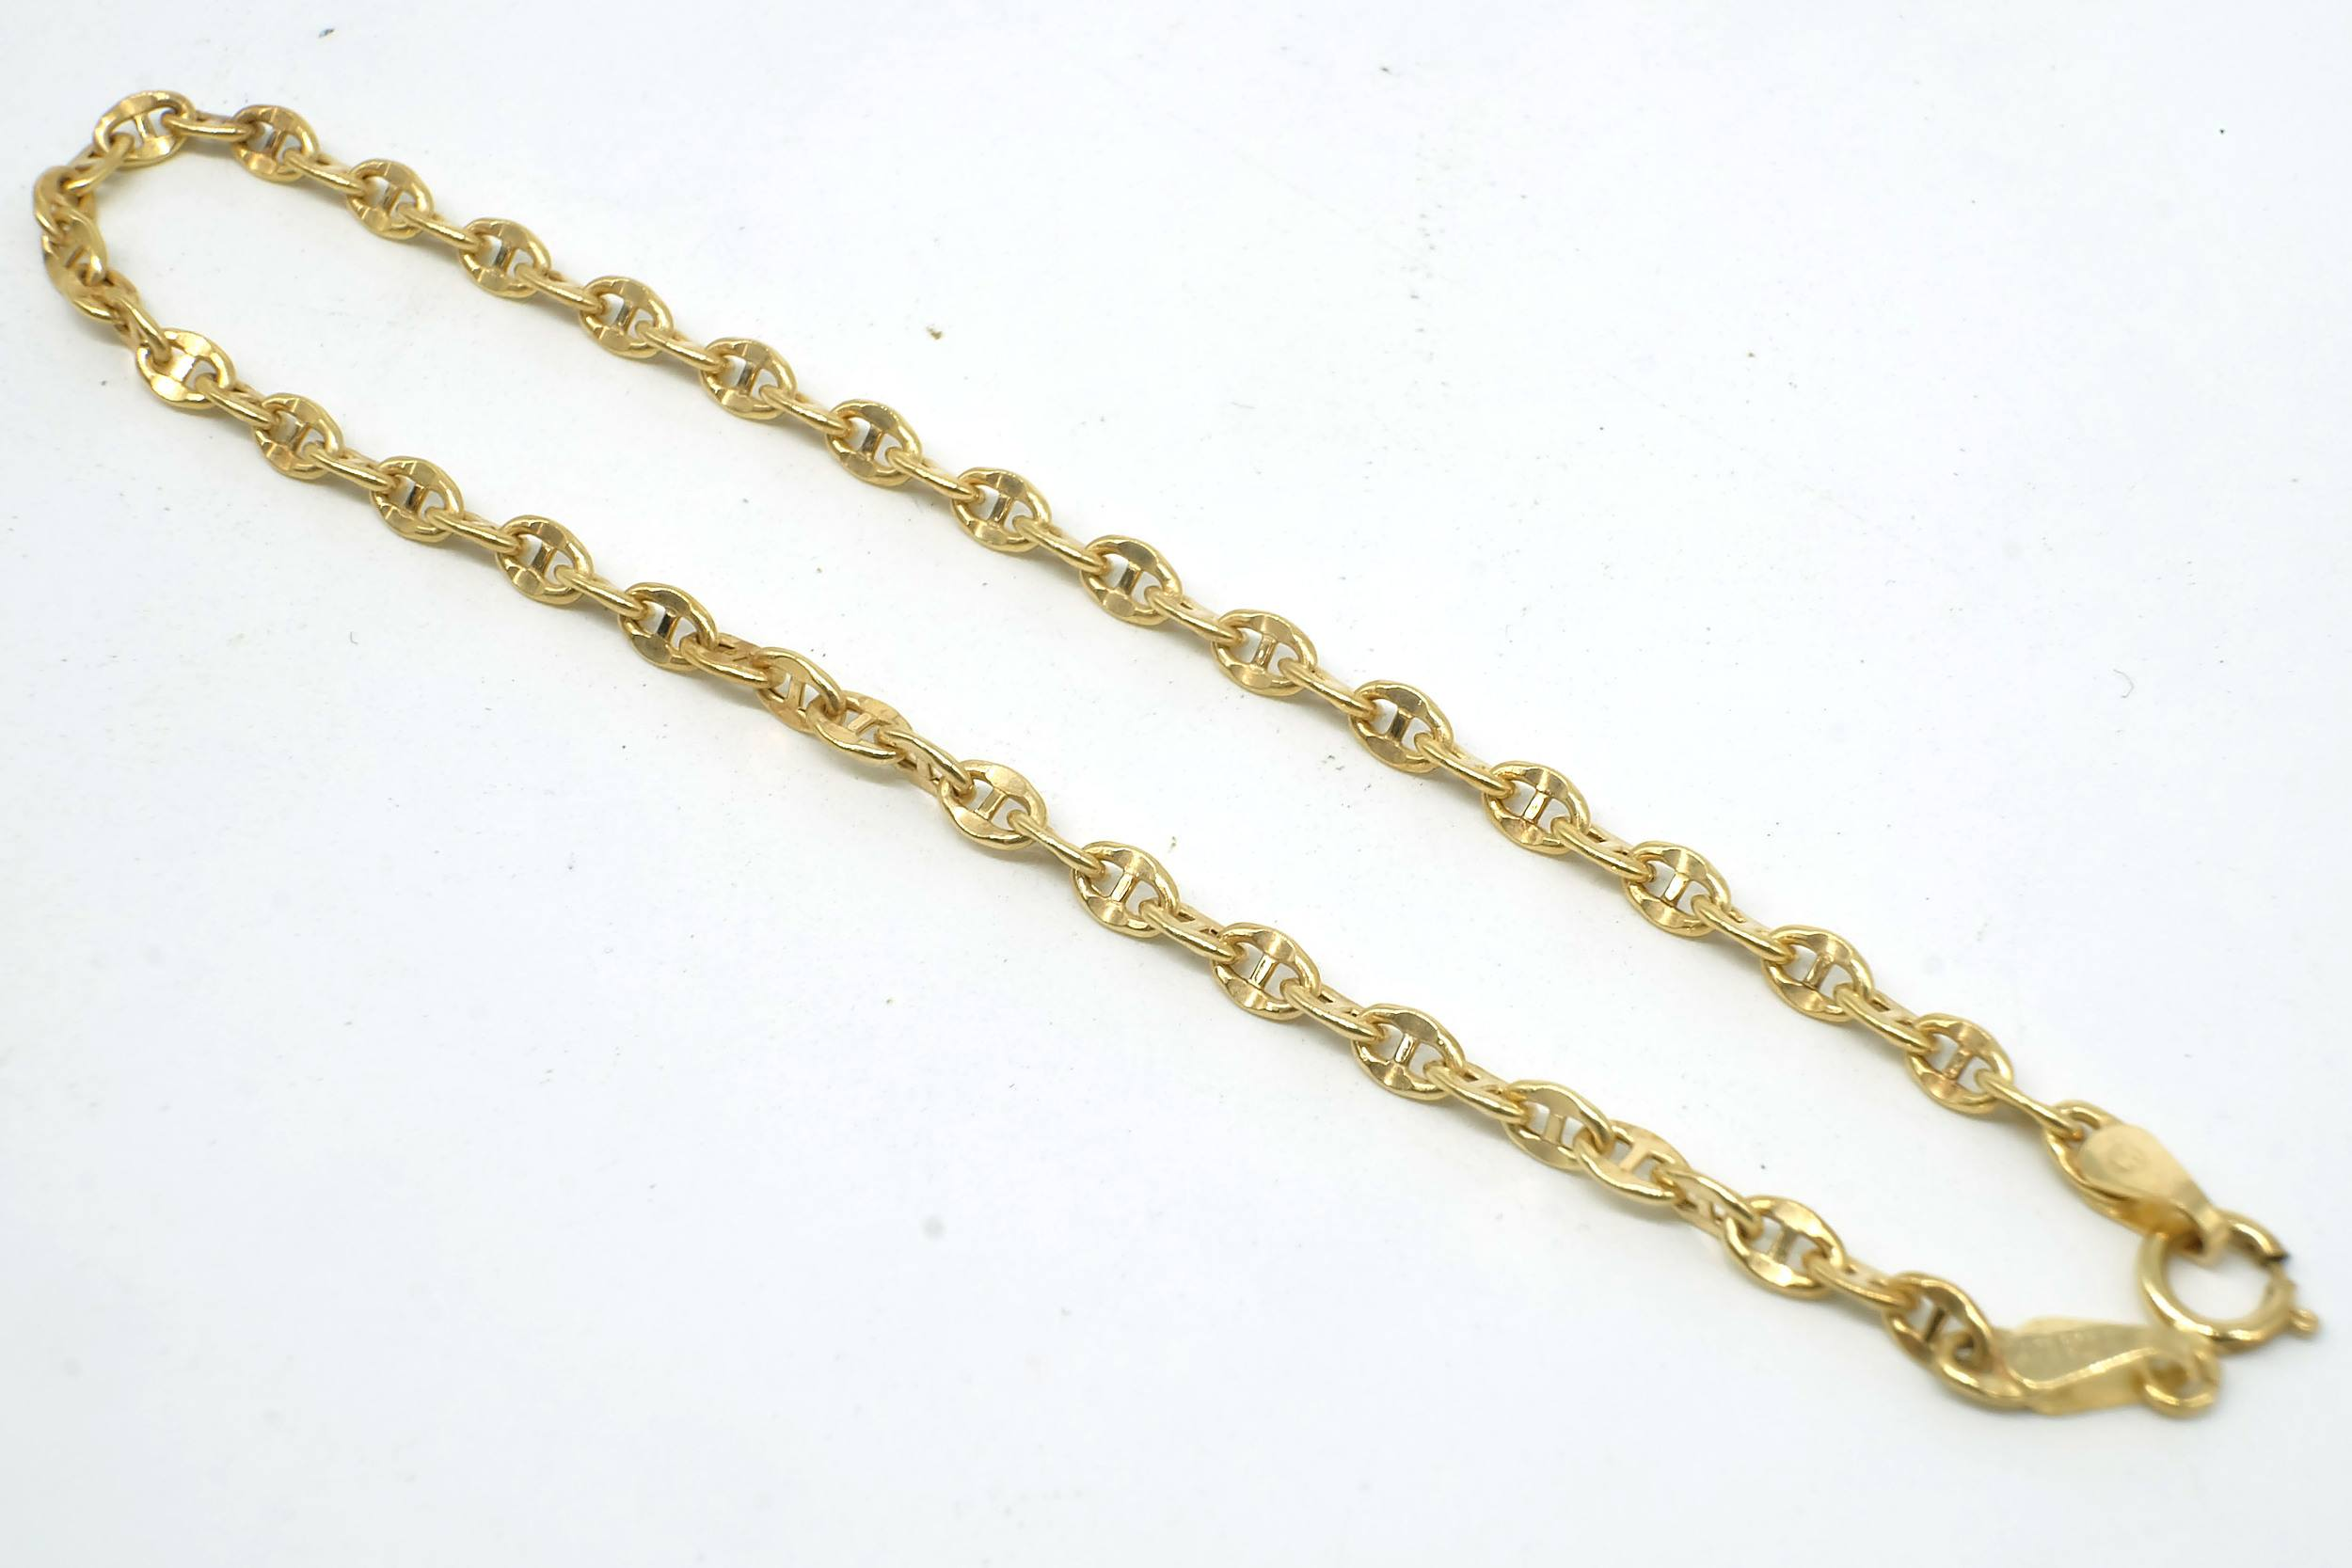 '9ct Yellow Gold Gucci Type Link  Bracelet, 1g'